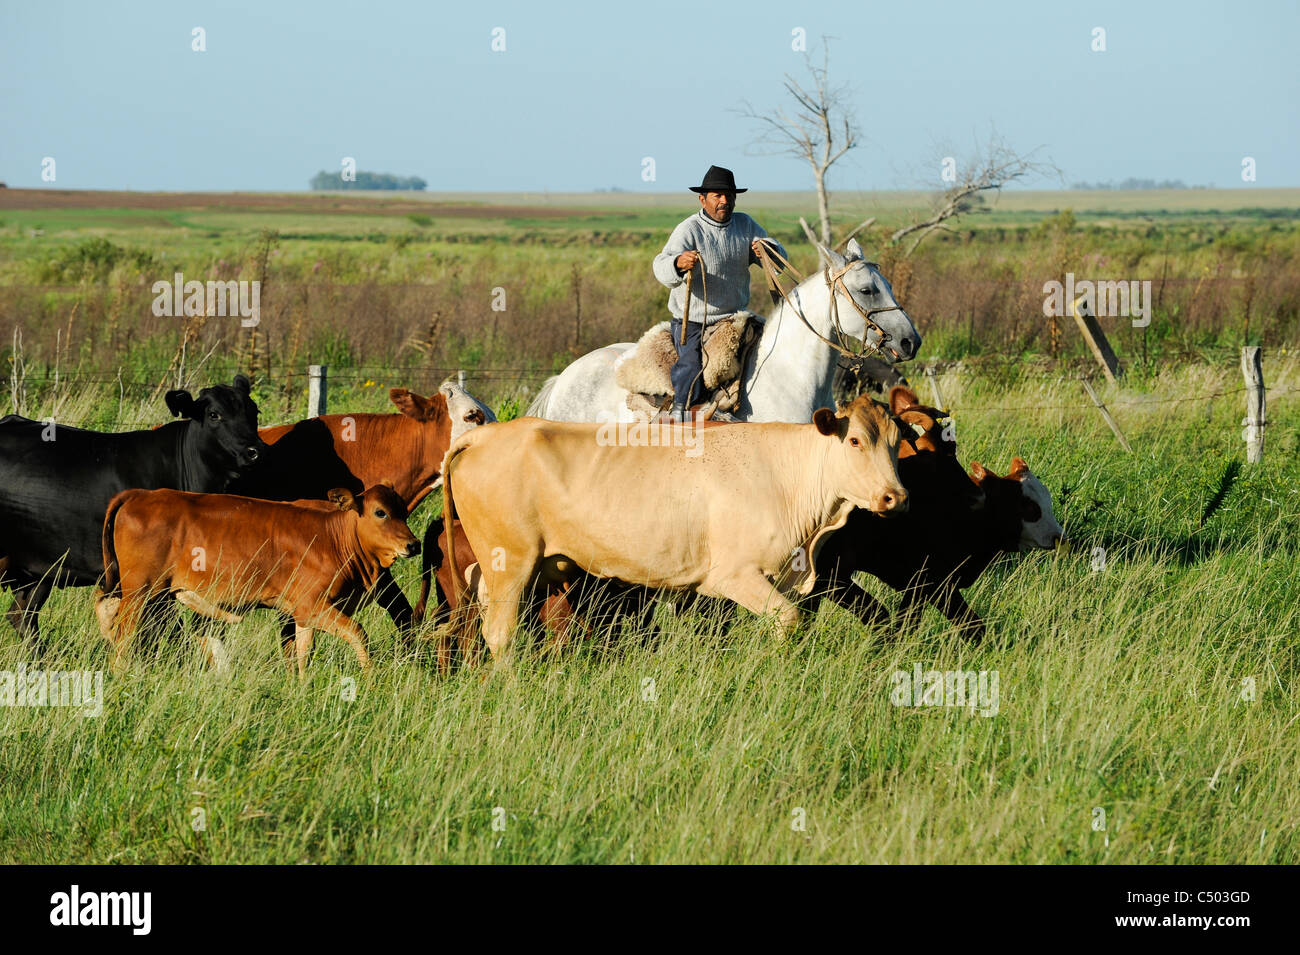 URUGUAY - Tacuarembo, cow herd and Gaucho on horse - Stock Image